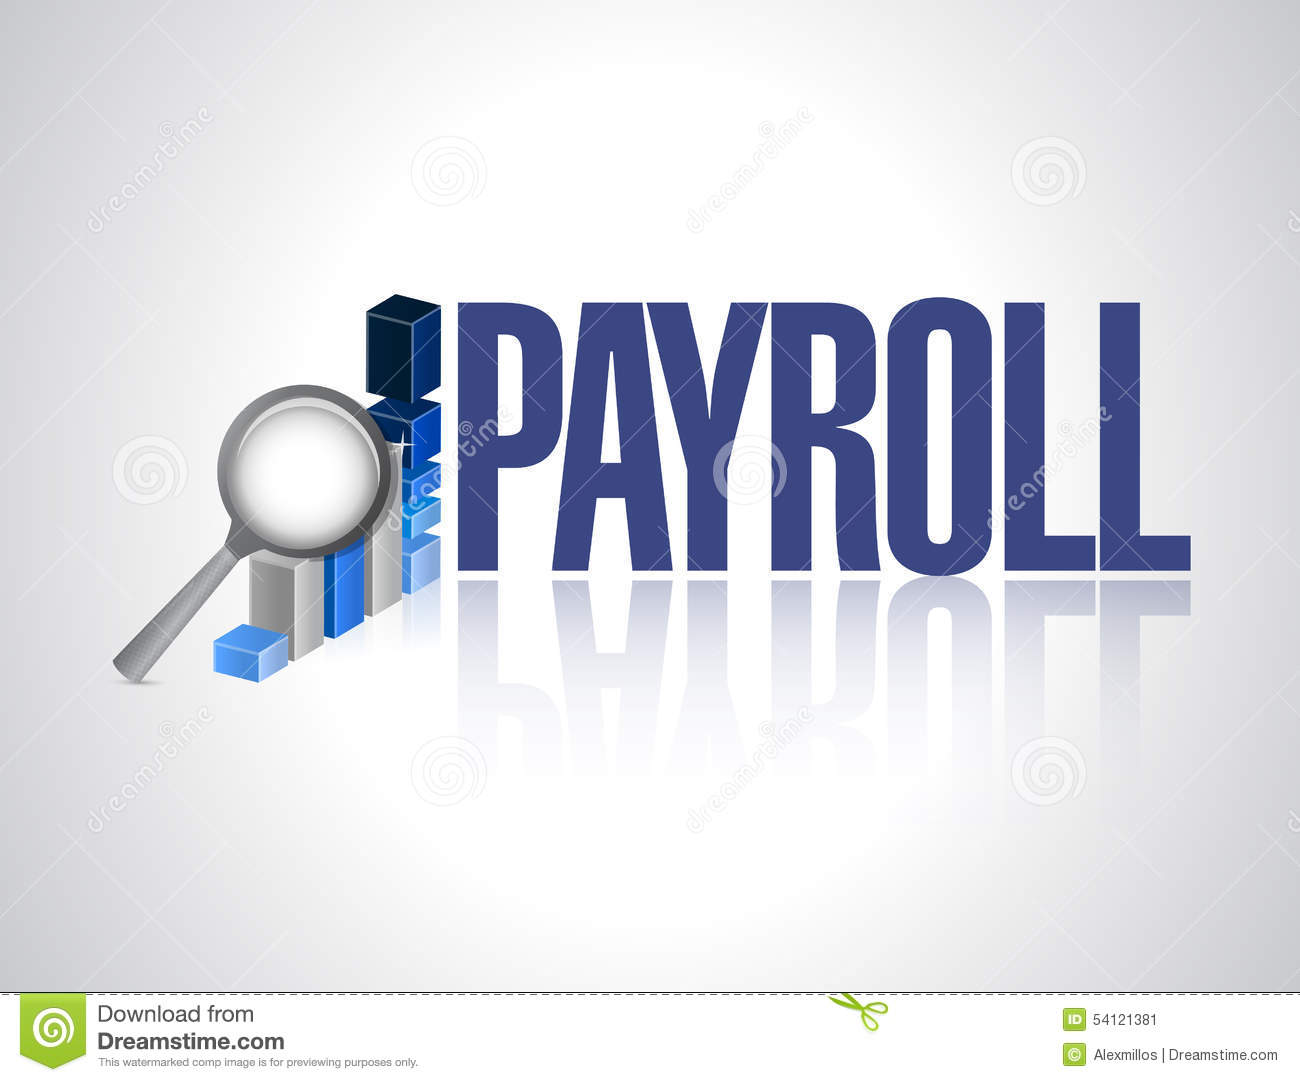 Payroll business graph sign concept stock illustration image 54121381 - Custom signs for home decor concept ...